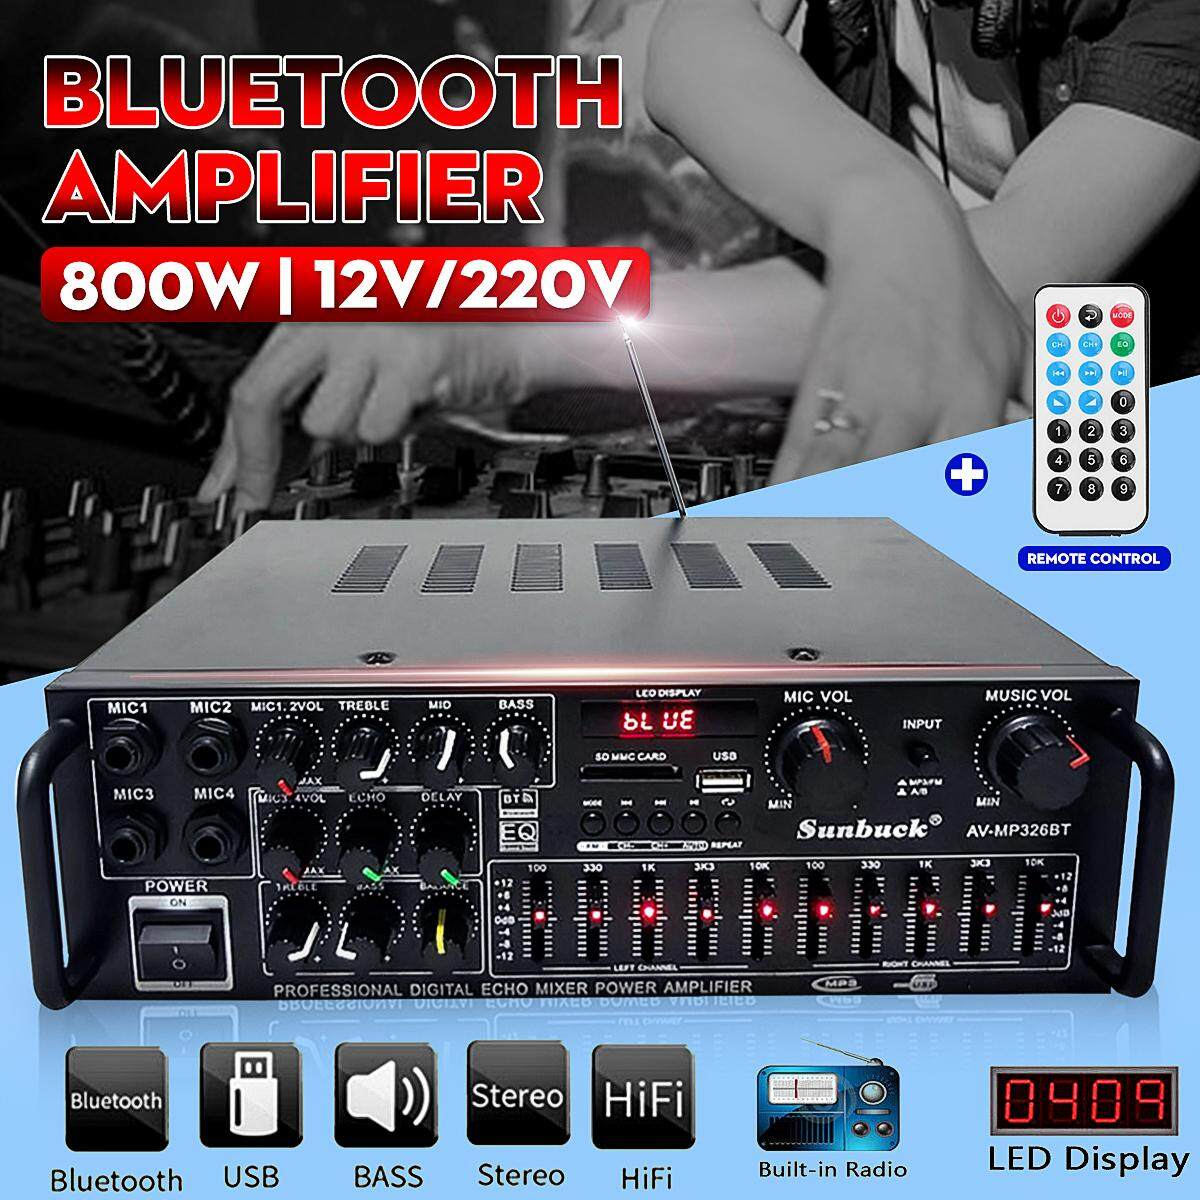 【Free Shipping + Super Deal + Limited Offer】EQ Bluetooth Stereo Amplifier  800W 4 ohm 2CH USB 64GB Disk/SD Card Car Home 220V